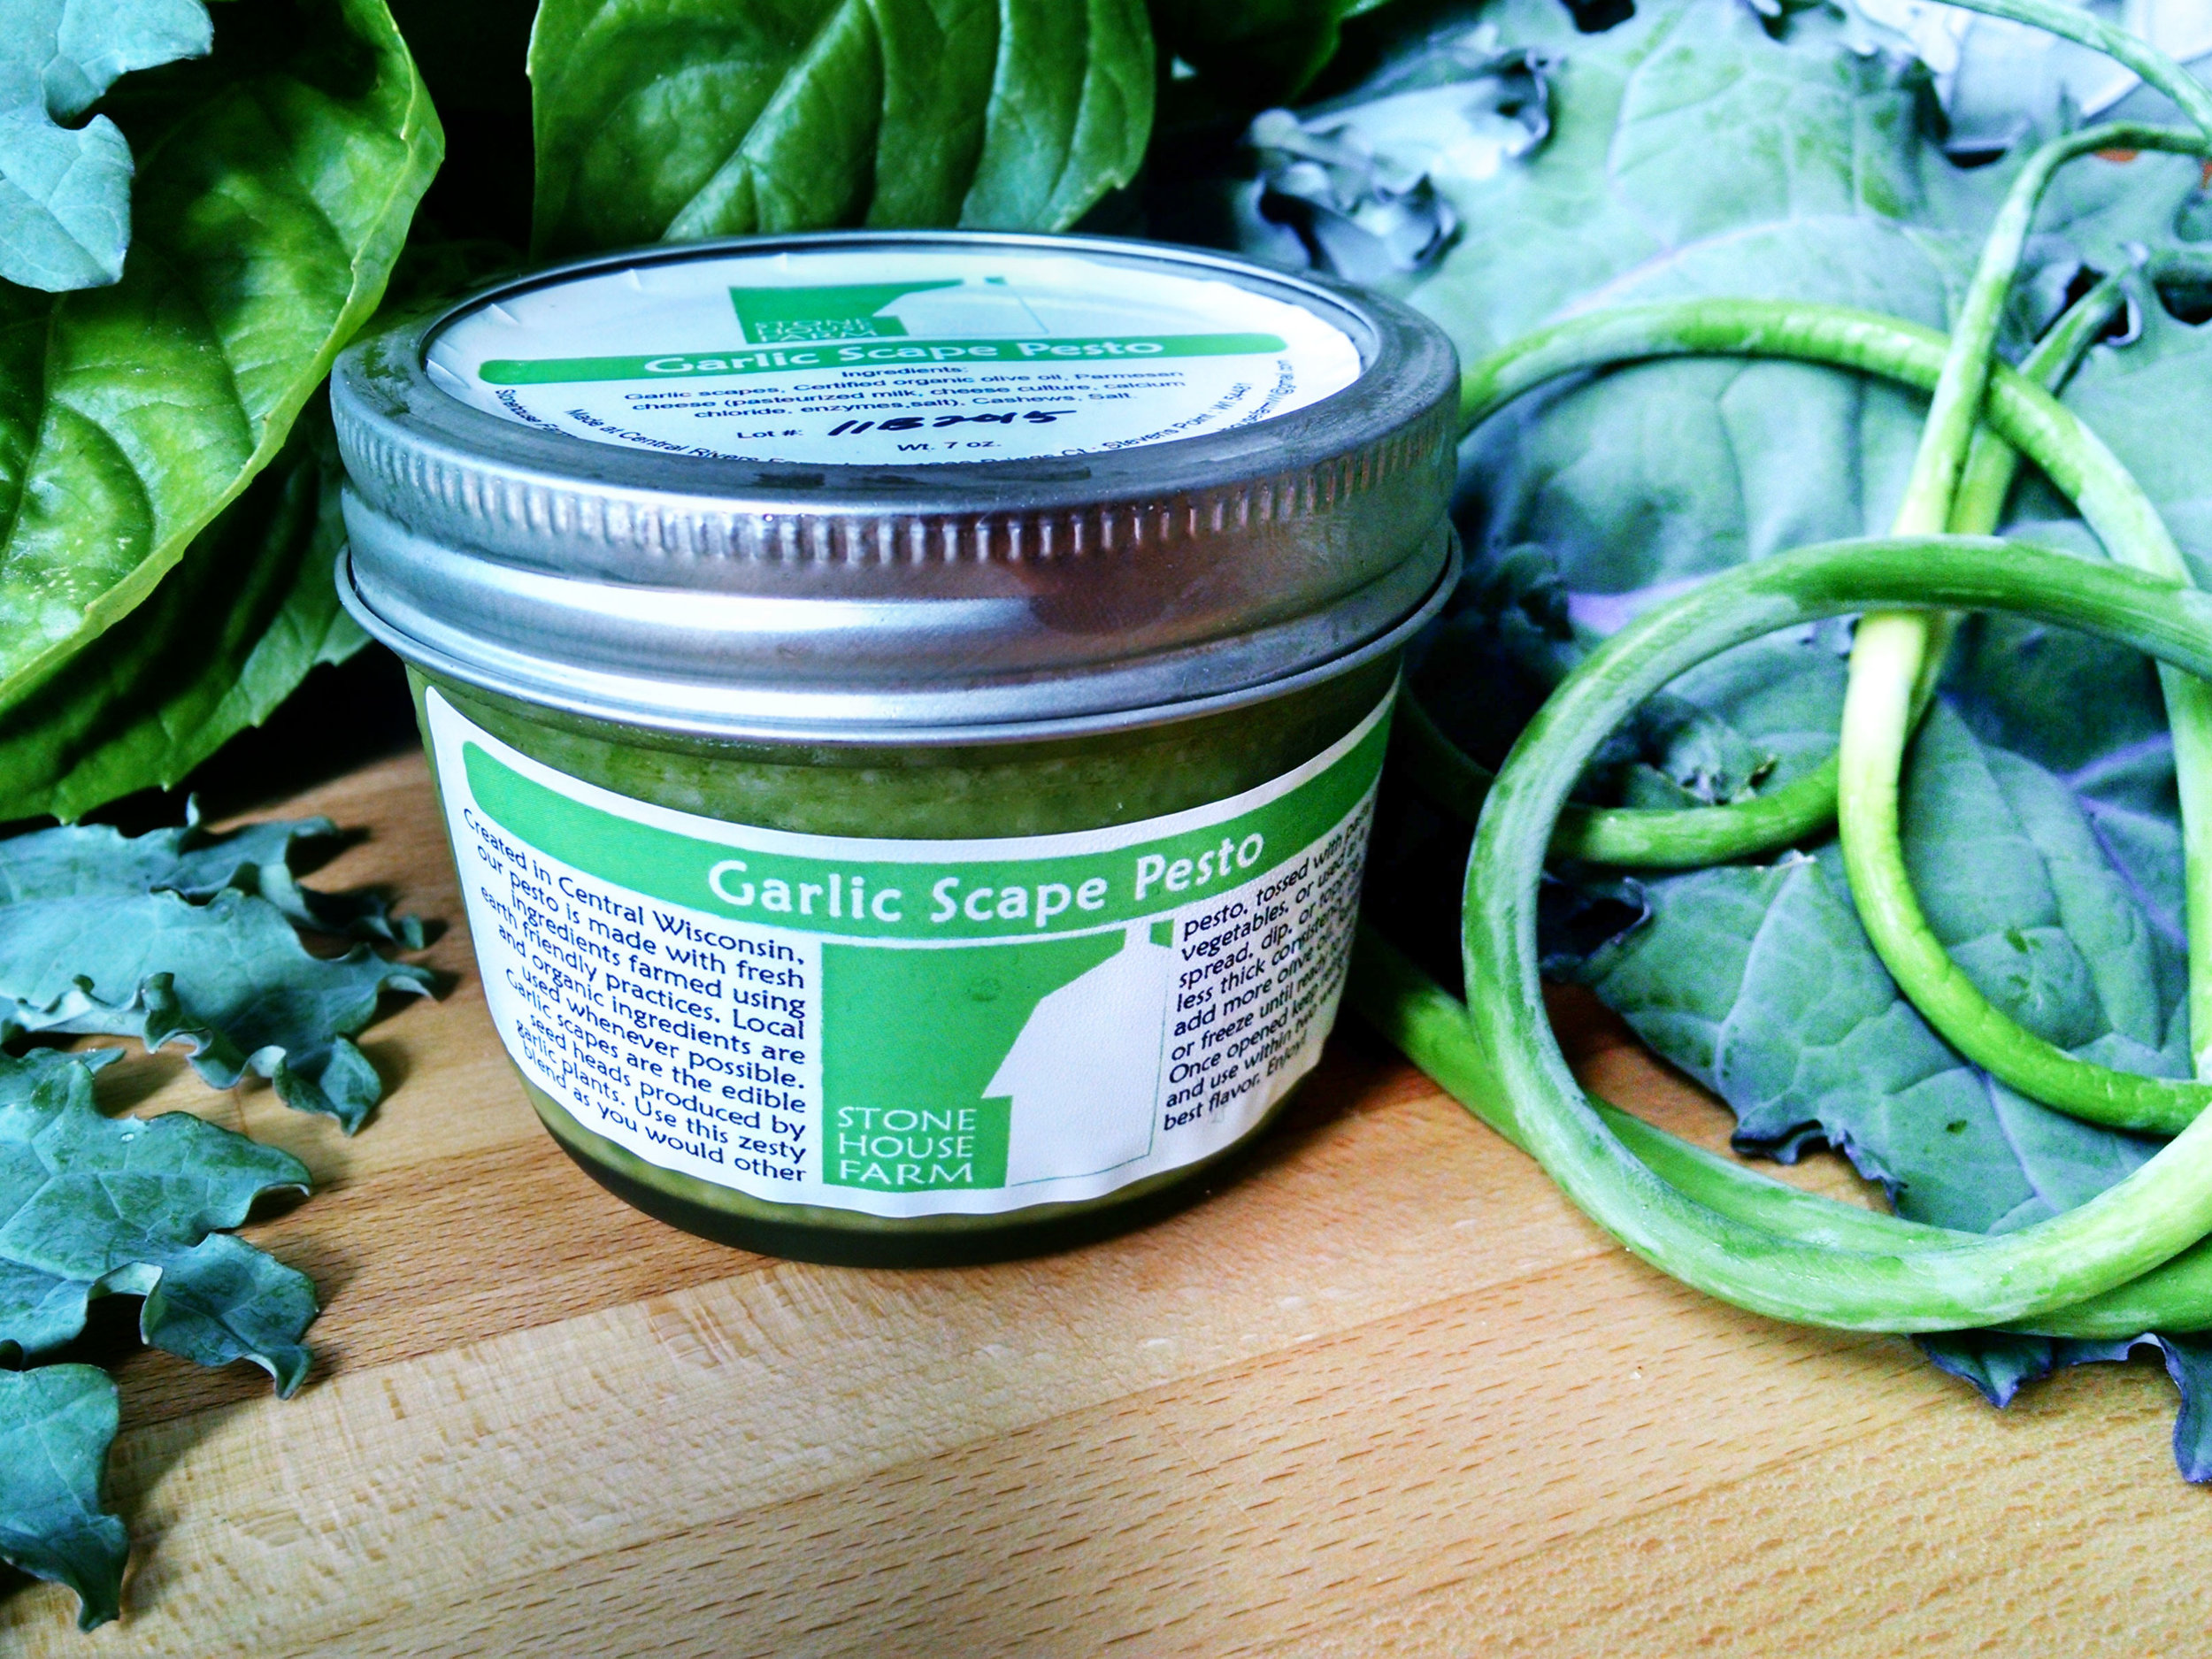 Garlic Scape Pesto:  This is a rich, spicy blend of garlic scapes, certified organic olive oil, parmesan cheese, cashews, and a pinch of sea salt. If you love garlic, this pesto is for you! It can be used in a variety of ways and is delicious blended with mayonnaise or greek yogurt.